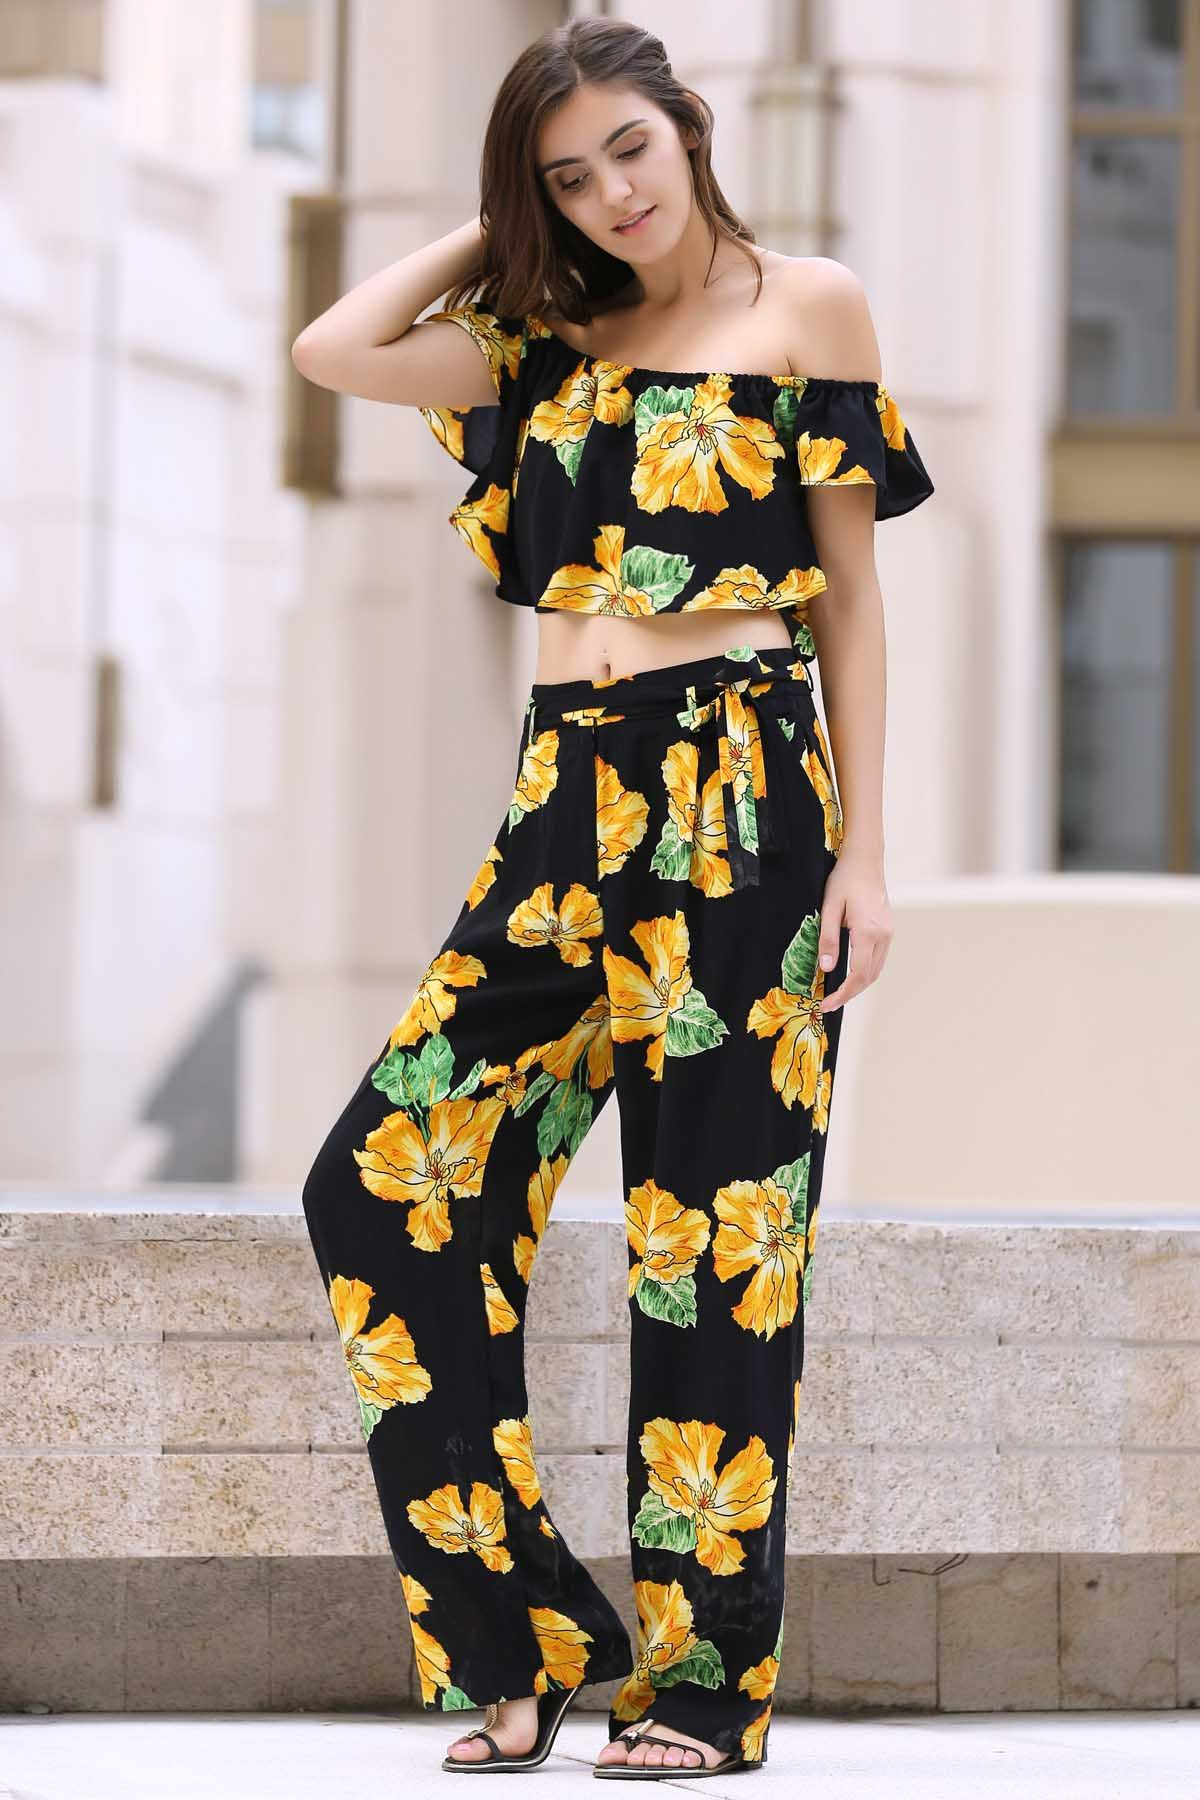 86a35ce6a8d98 Cold Shoulder Ruffle Crop Top And Palazzo Pants Twinset BLACK  Two-Piece  Outfits